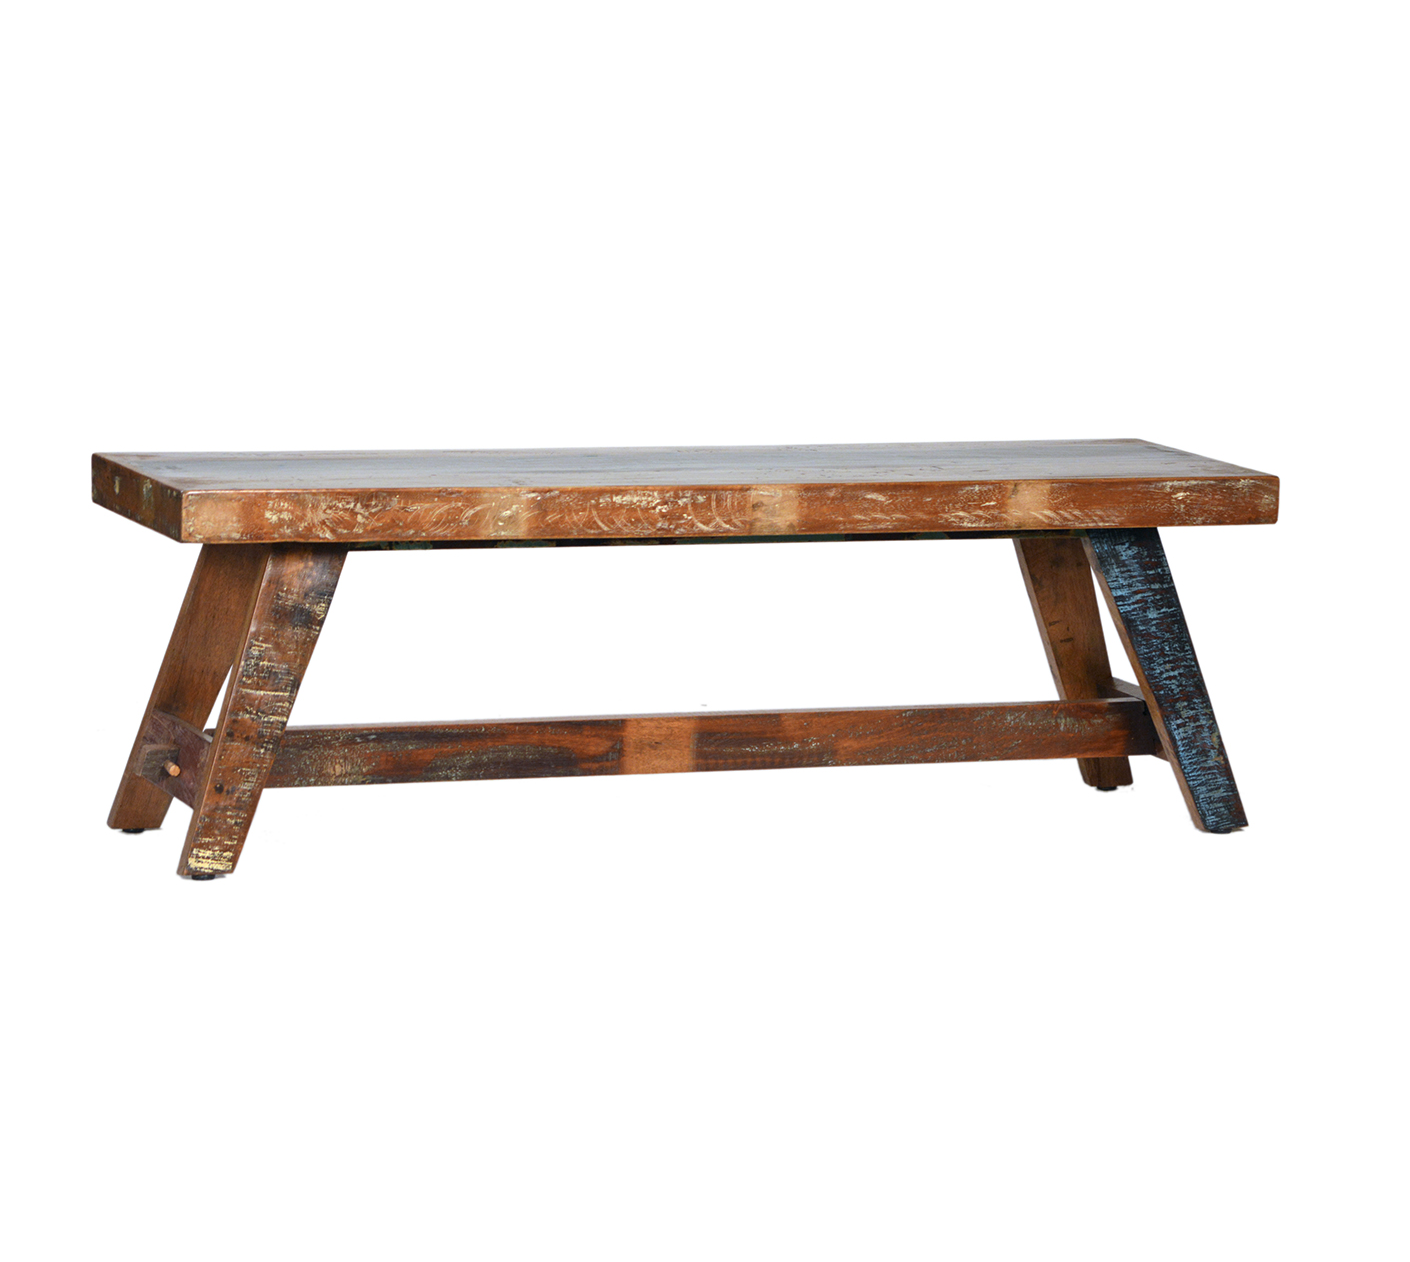 Reclaimed Indian Bench